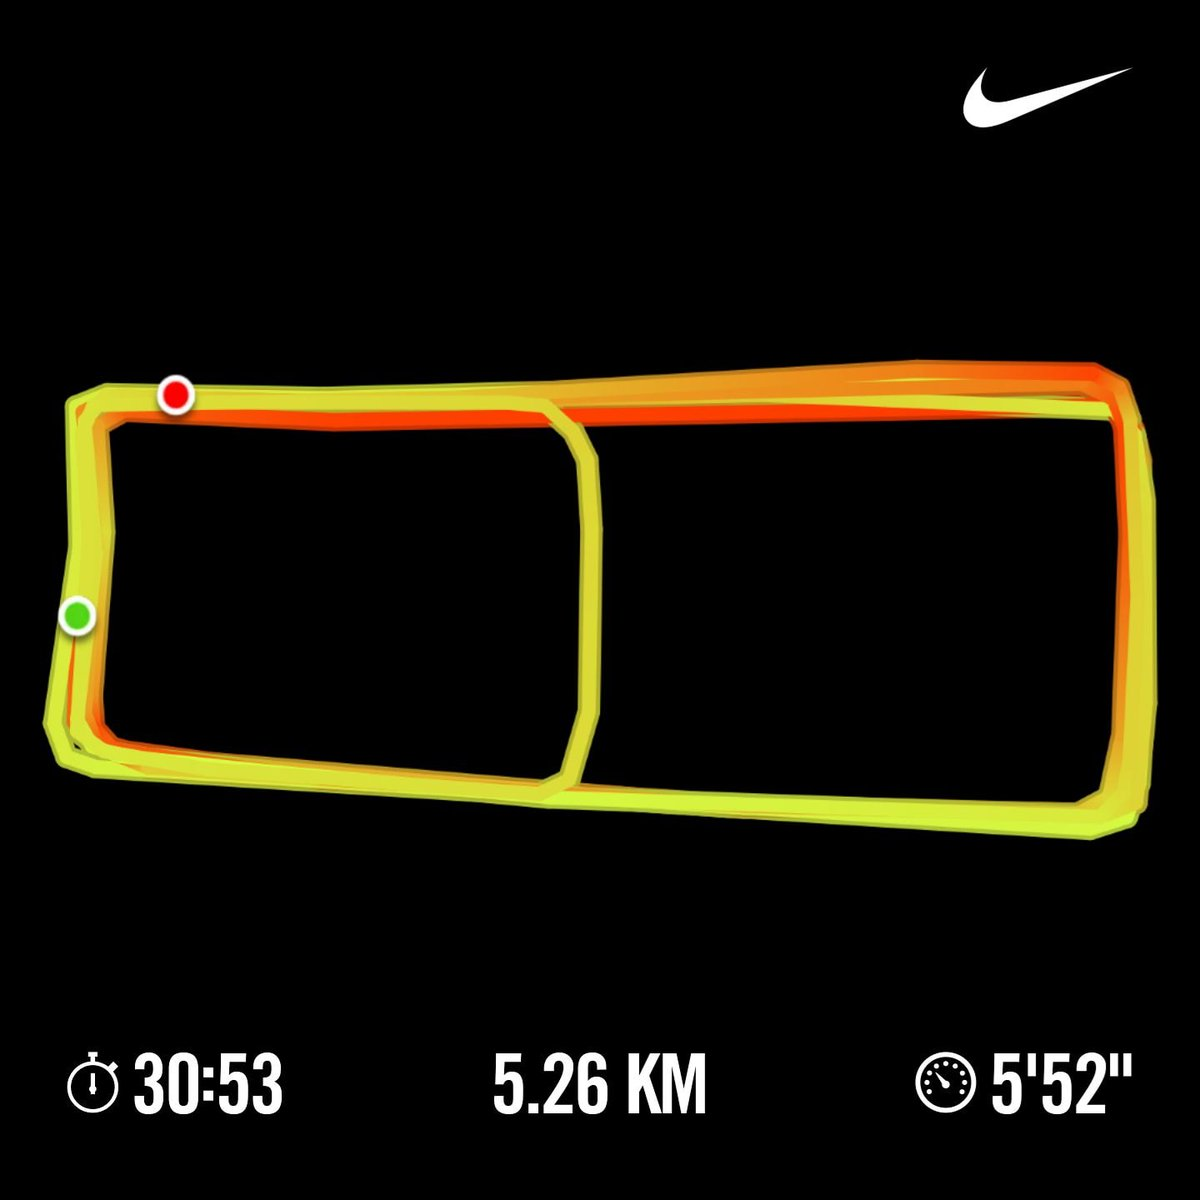 5.26km completed.   Do not let the things you cannot do to get in the way of the things you can do.  #naijaFittest #runner #nikeplus #fitfam #strava #GoogleFit #itsAmarathon #ItsALifestyle #IamAccountable #yourturn   ✅👌🇳🇬🔥💪🏃♂️✌